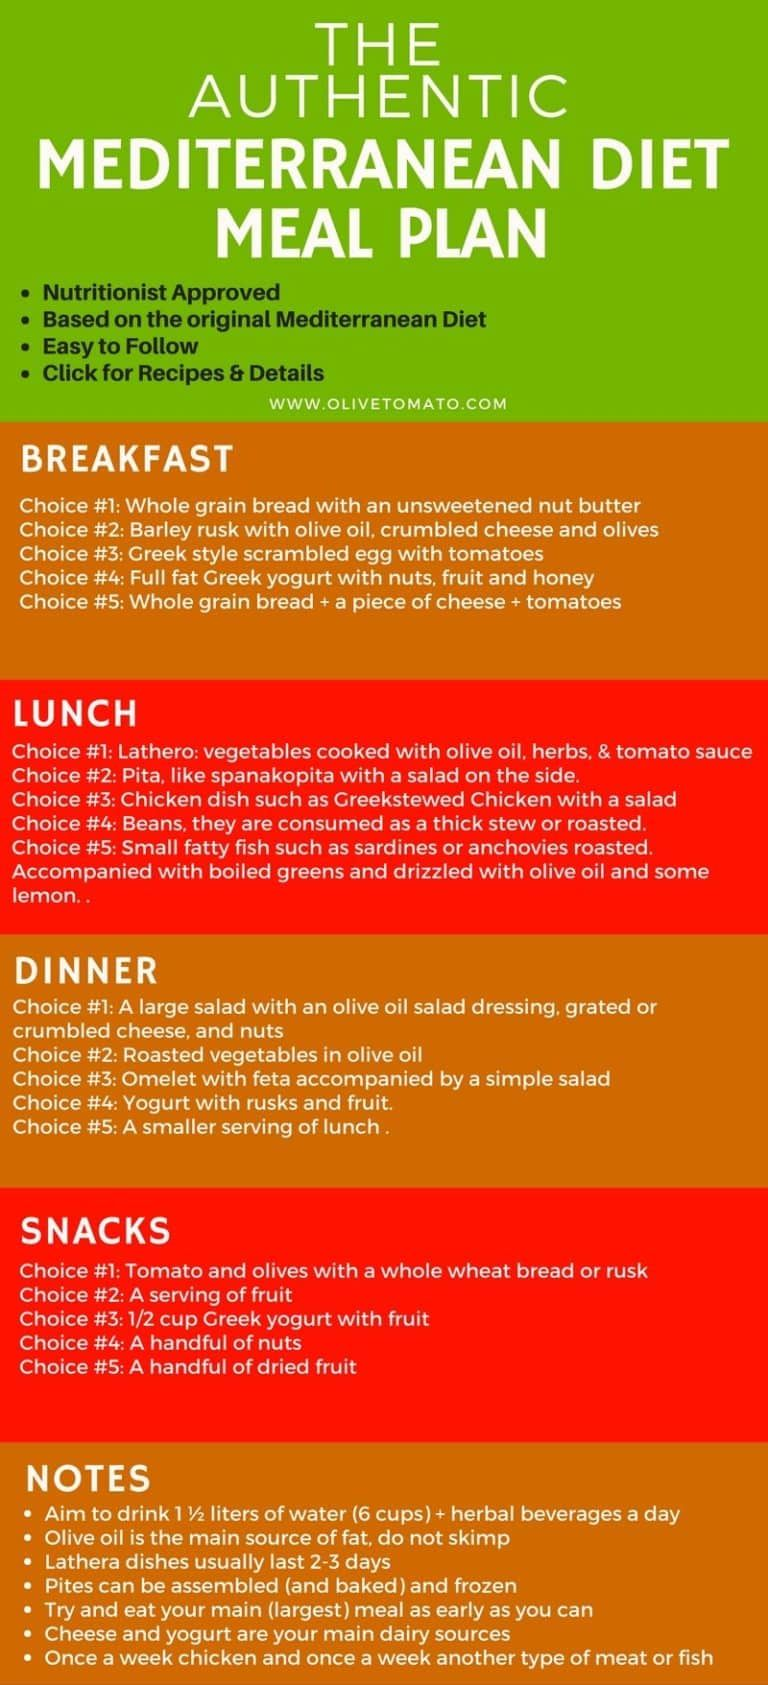 The Authentic Mediterranean Diet Meal Plan and Menu